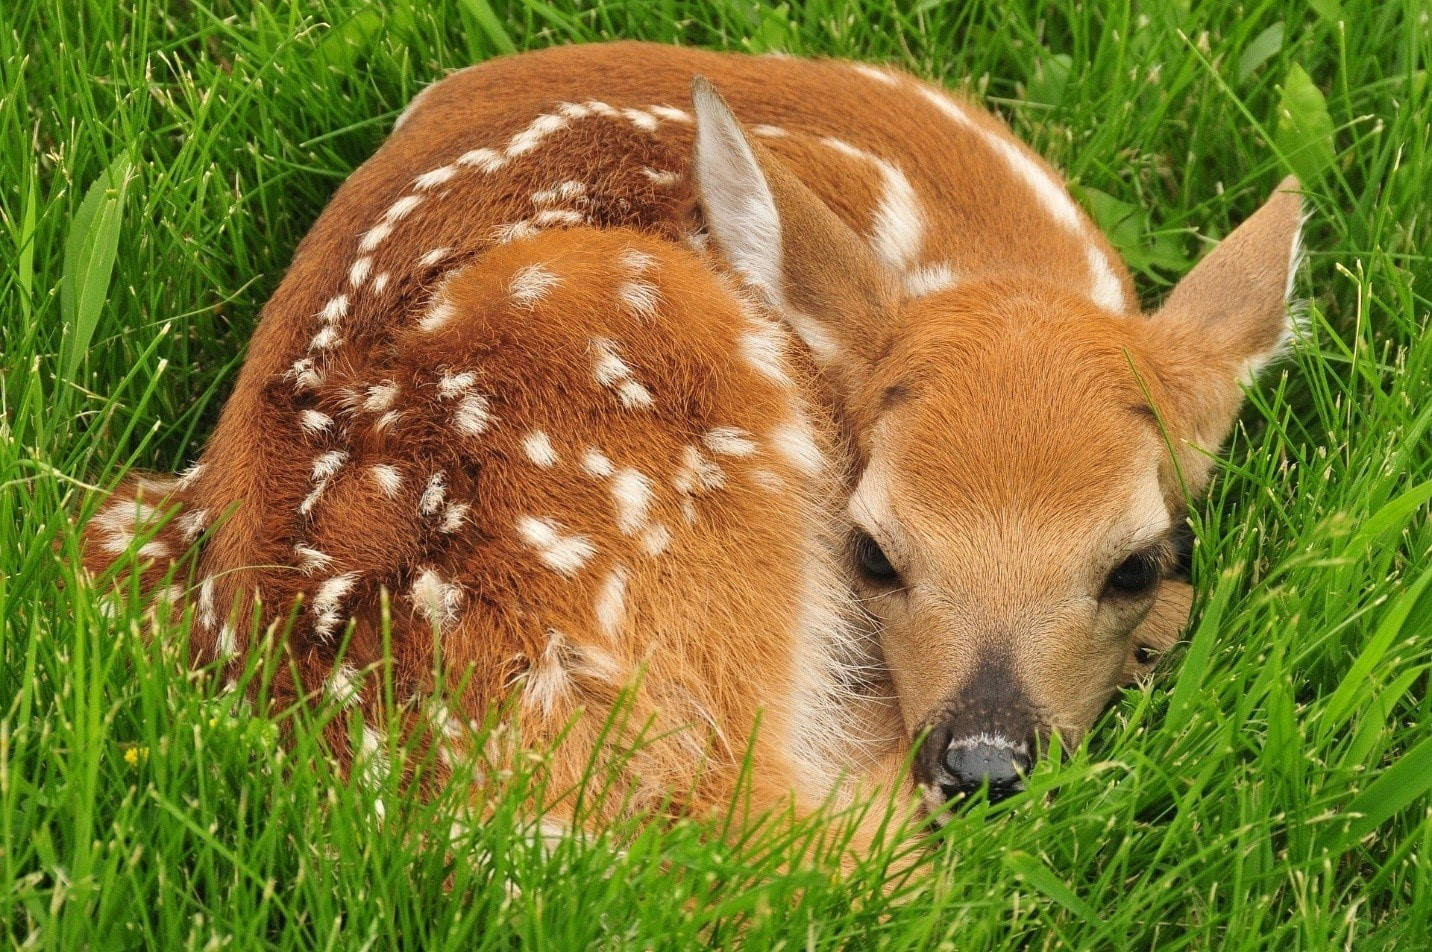 Spotted fawn curled up sleeping in grass